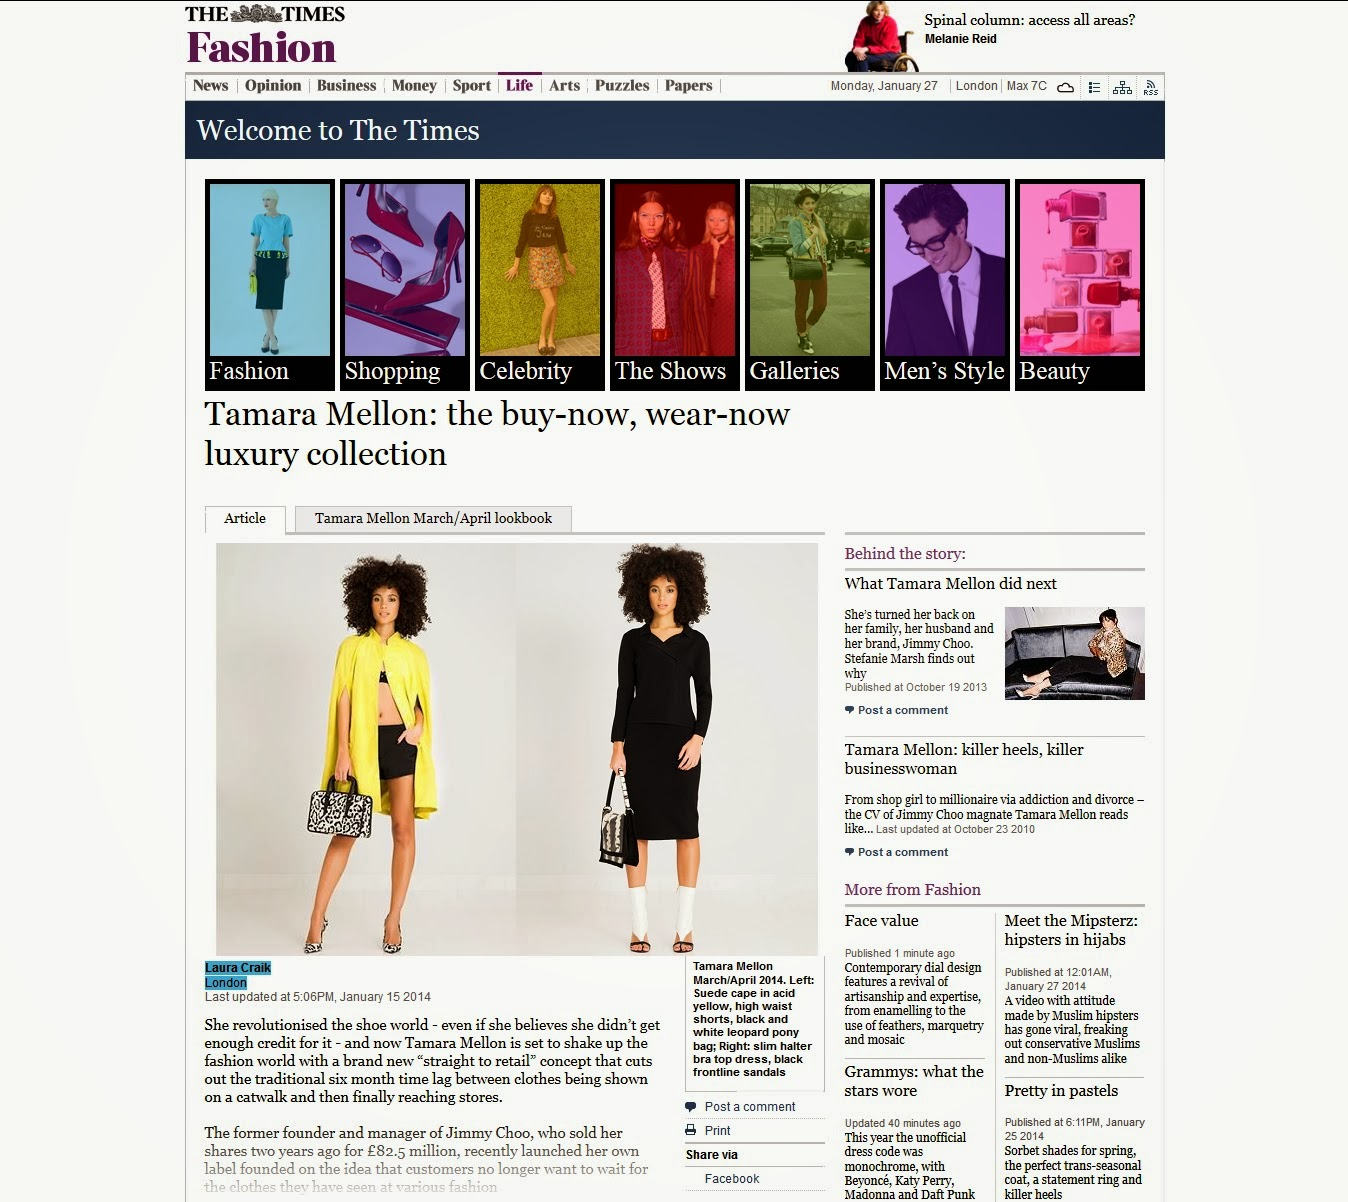 http://www.thetimes.co.uk/tto/life/fashion/article3976157.ece